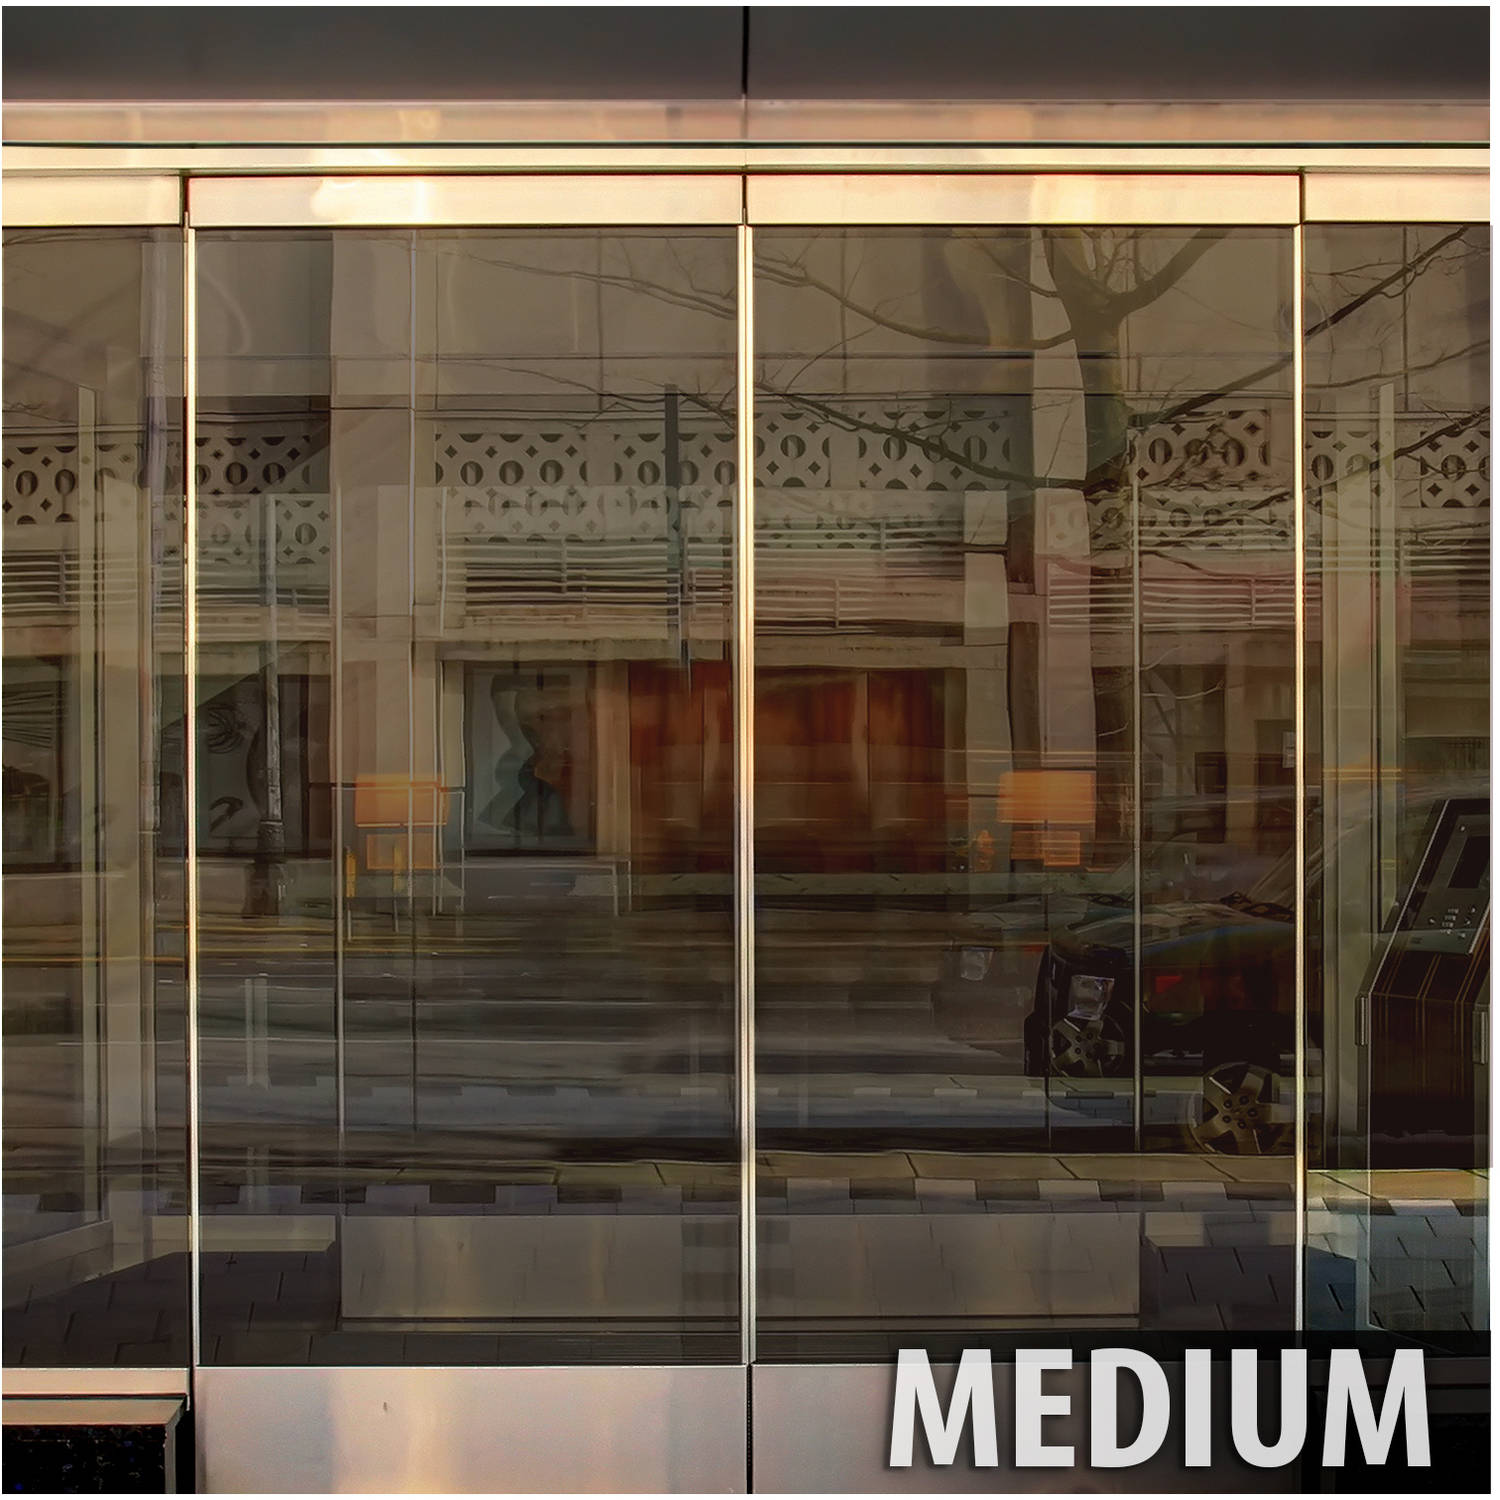 BDF BRZ35 Bronze Sun and Heat Control Window Film (Medium) 36in X 7ft by BuyDecorativeFilm